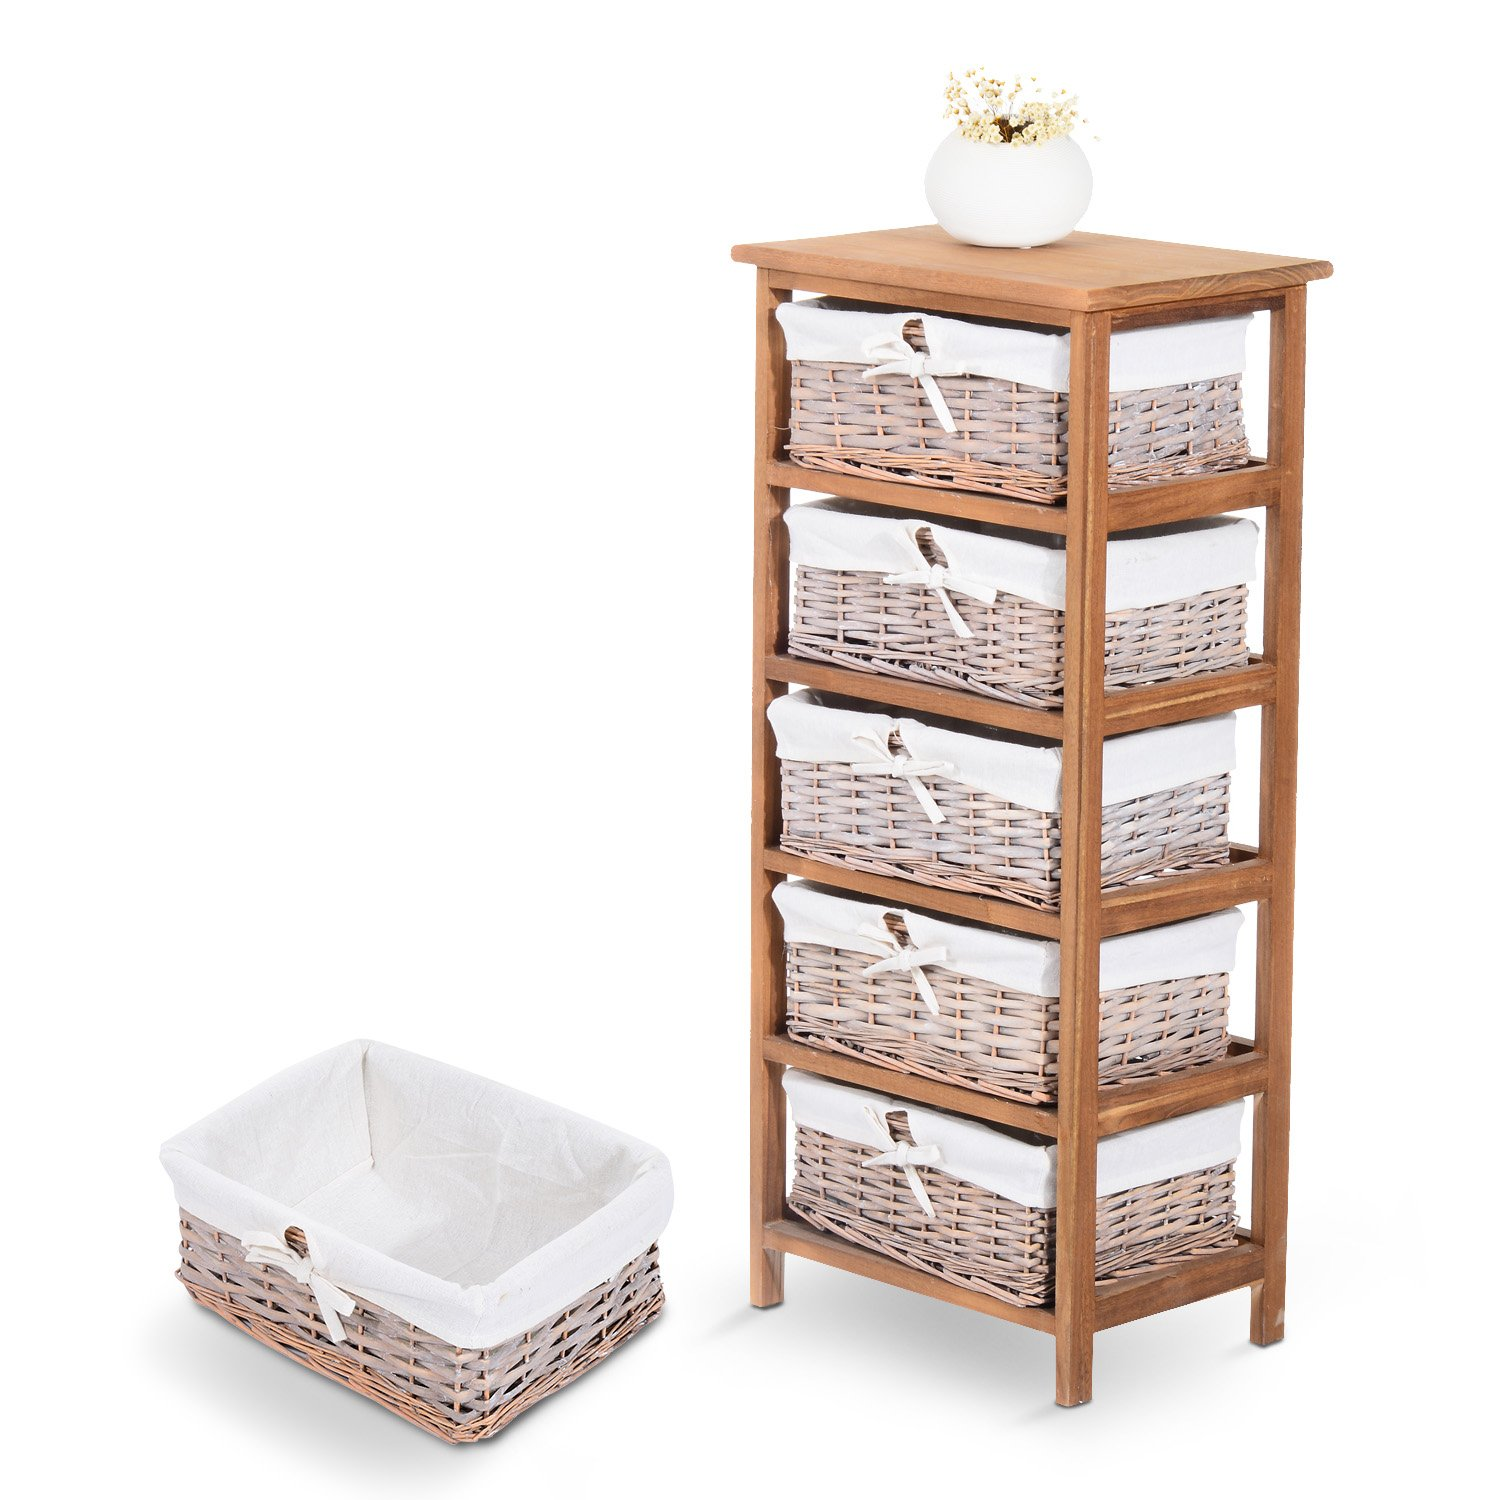 Tetbury white storage unit with 5 drawers bedroom furniture direct - Homcom 5 Drawer Storage Unit Wooden Frame With Wicker Woven Baskets Household Cabinet Chest Amazon Co Uk Diy Tools